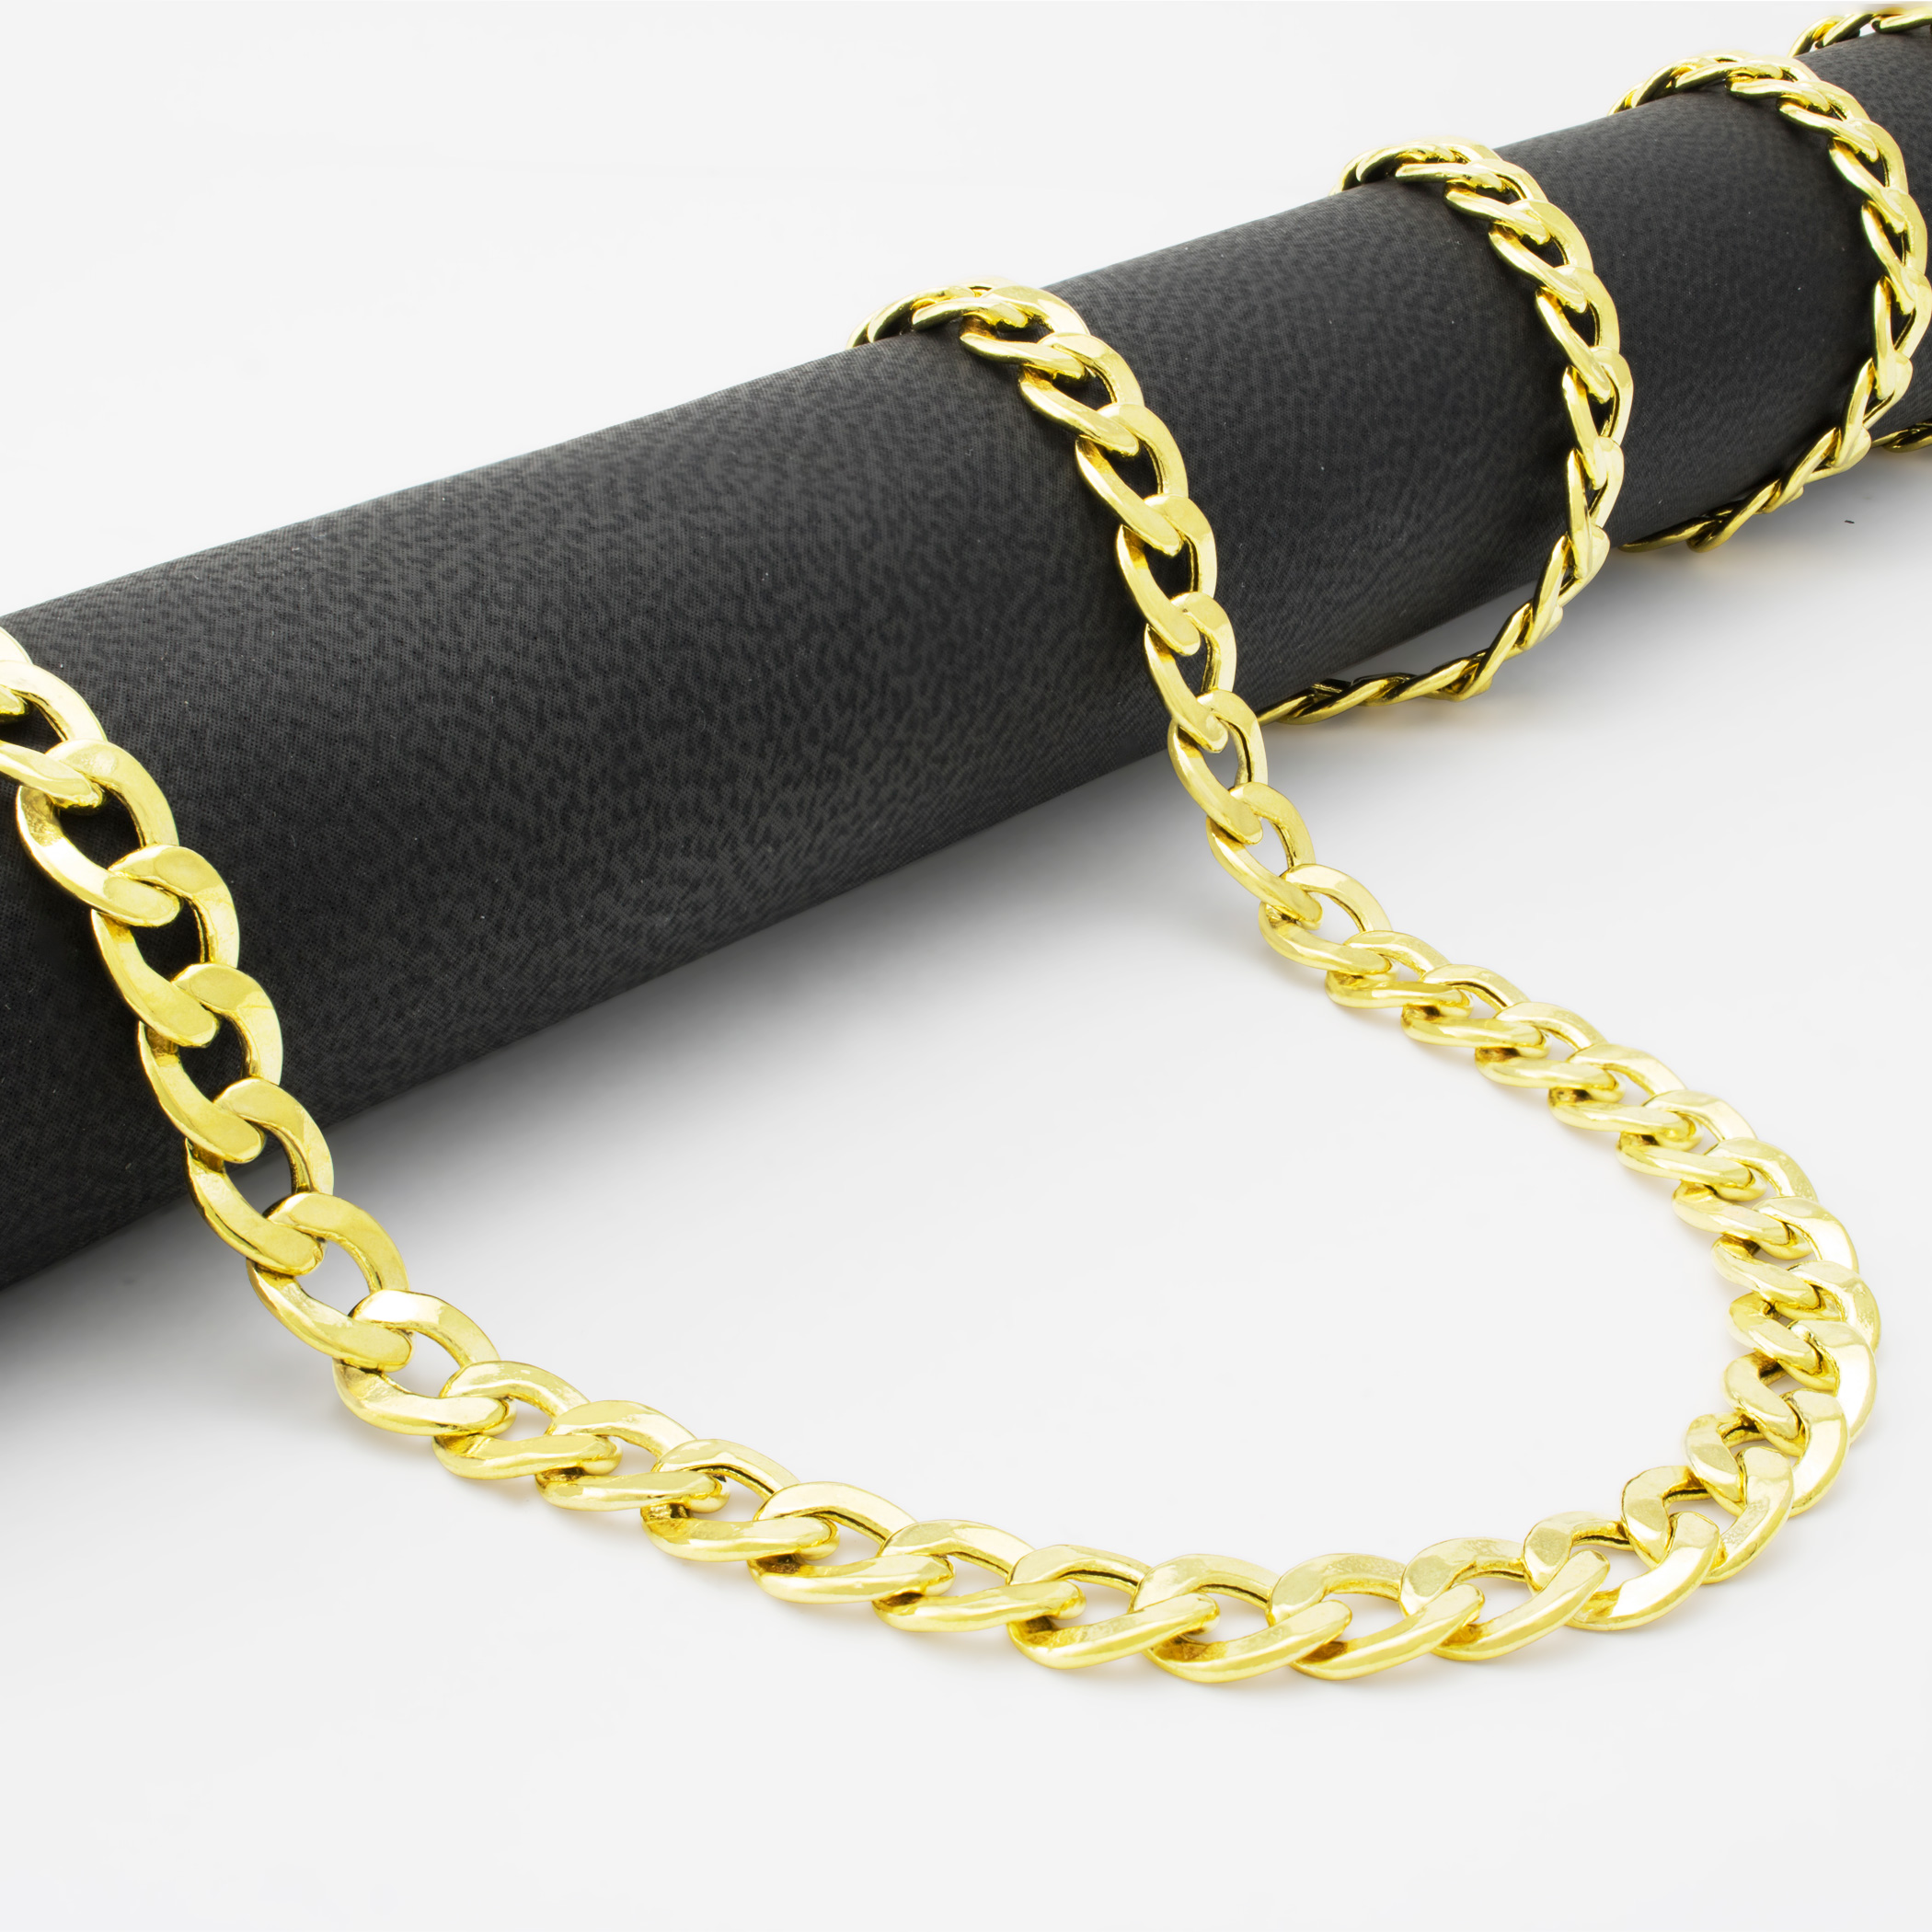 Real-10K-Yellow-Gold-6-5mm-Wide-Italian-Cuban-Link-Curb-Chain-Necklace-20-034-30-034